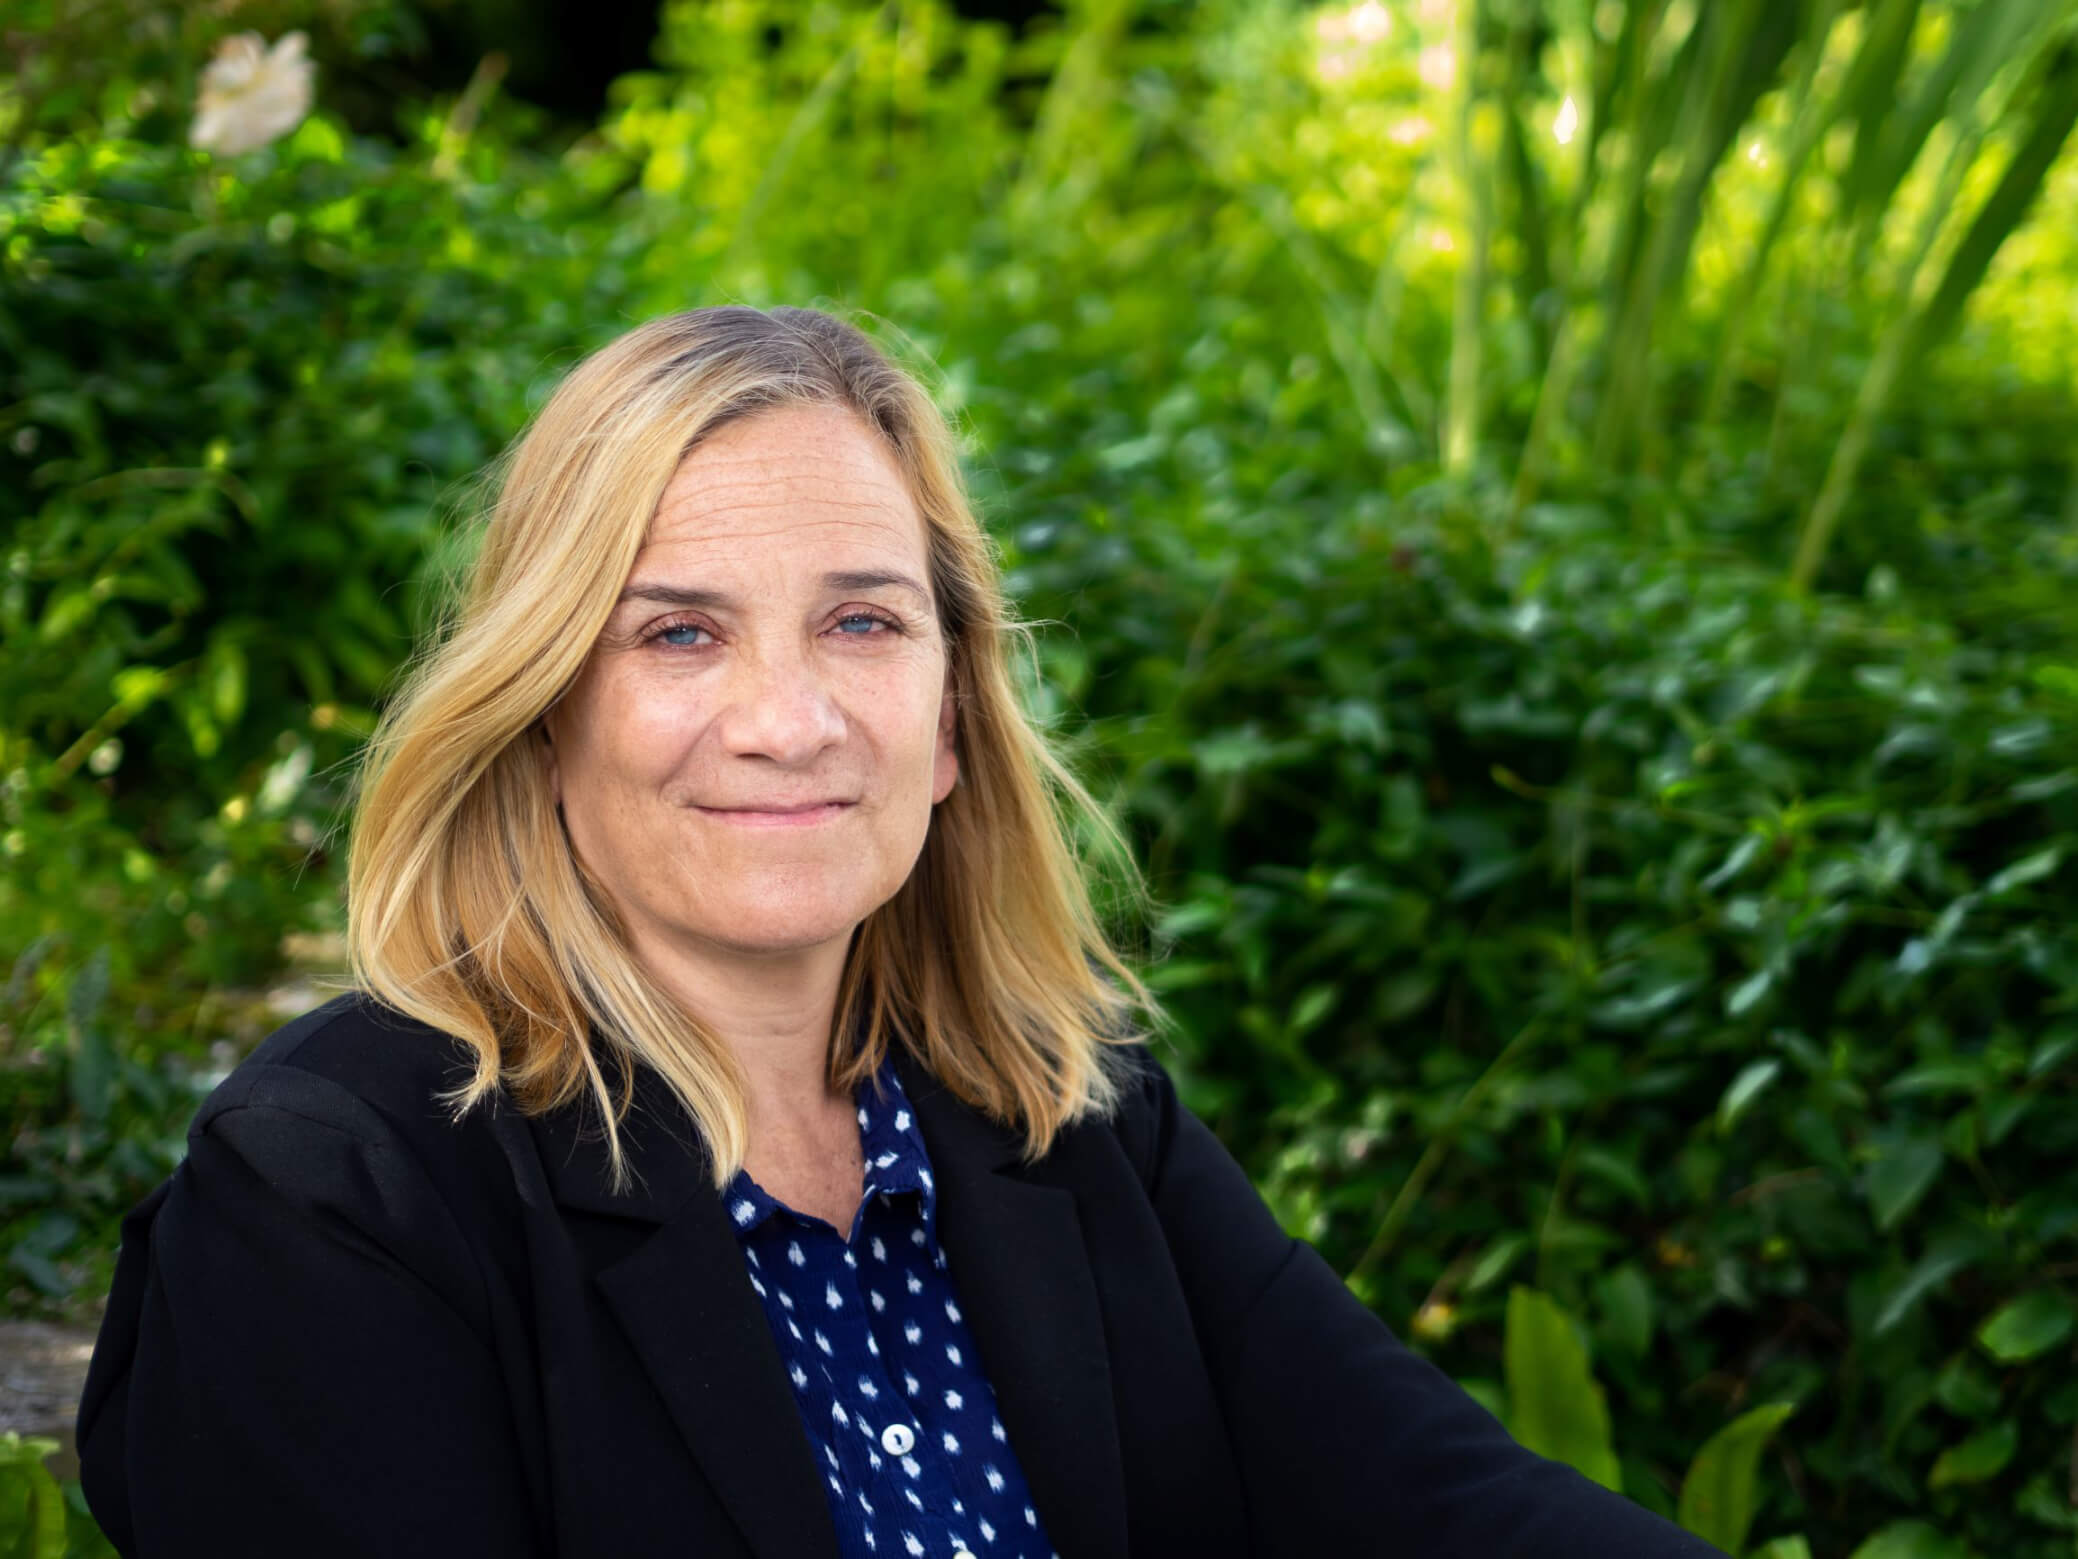 Episode 9. Writing Bestsellers, Unstructured Time, Life & Lipstick with Novelist Tracy Chevalier